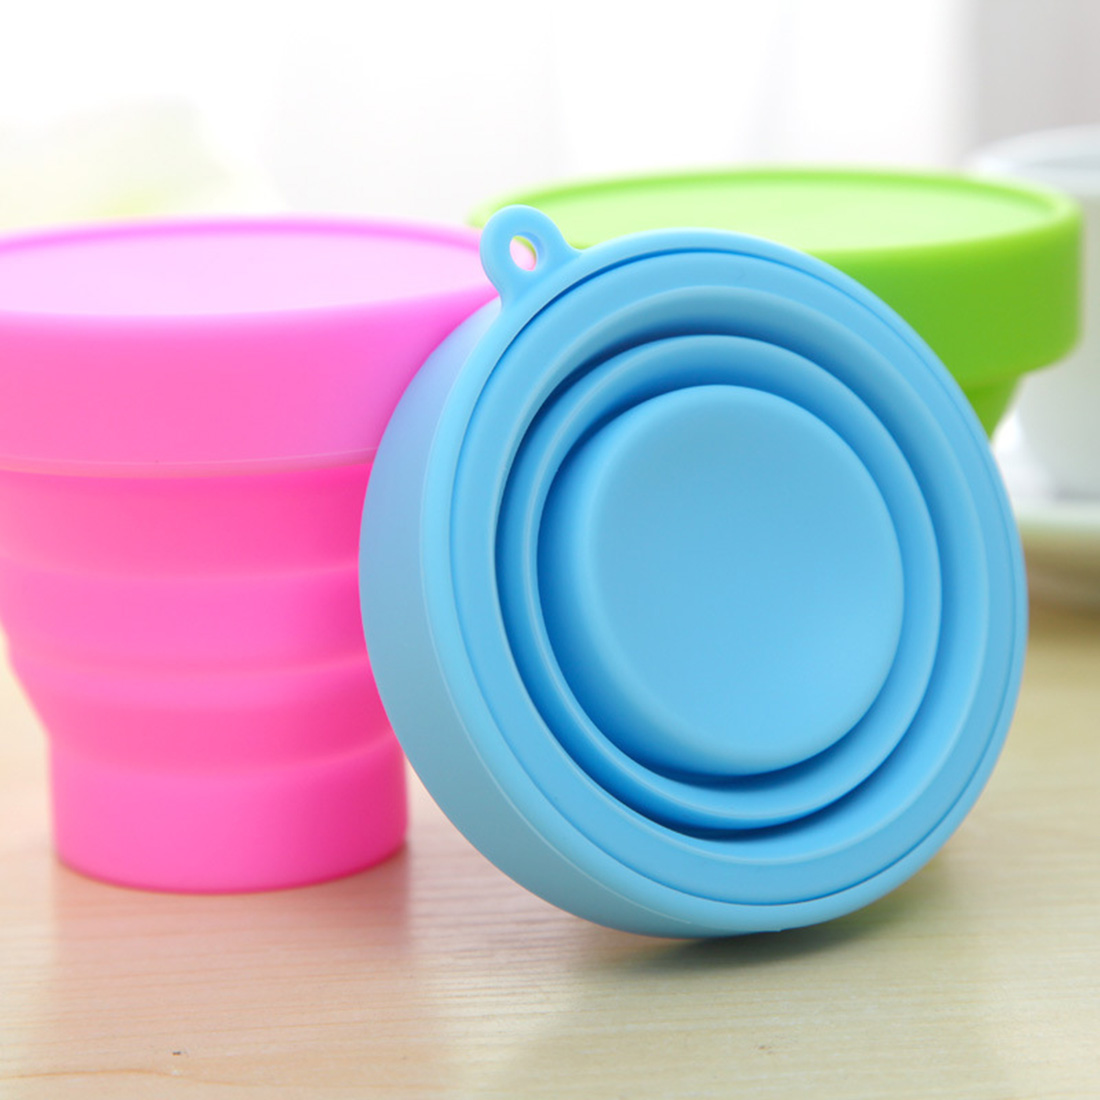 ヾ(^ ^)ノPortable Silicone Retractable Folding Cup ̿̿̿(•̪